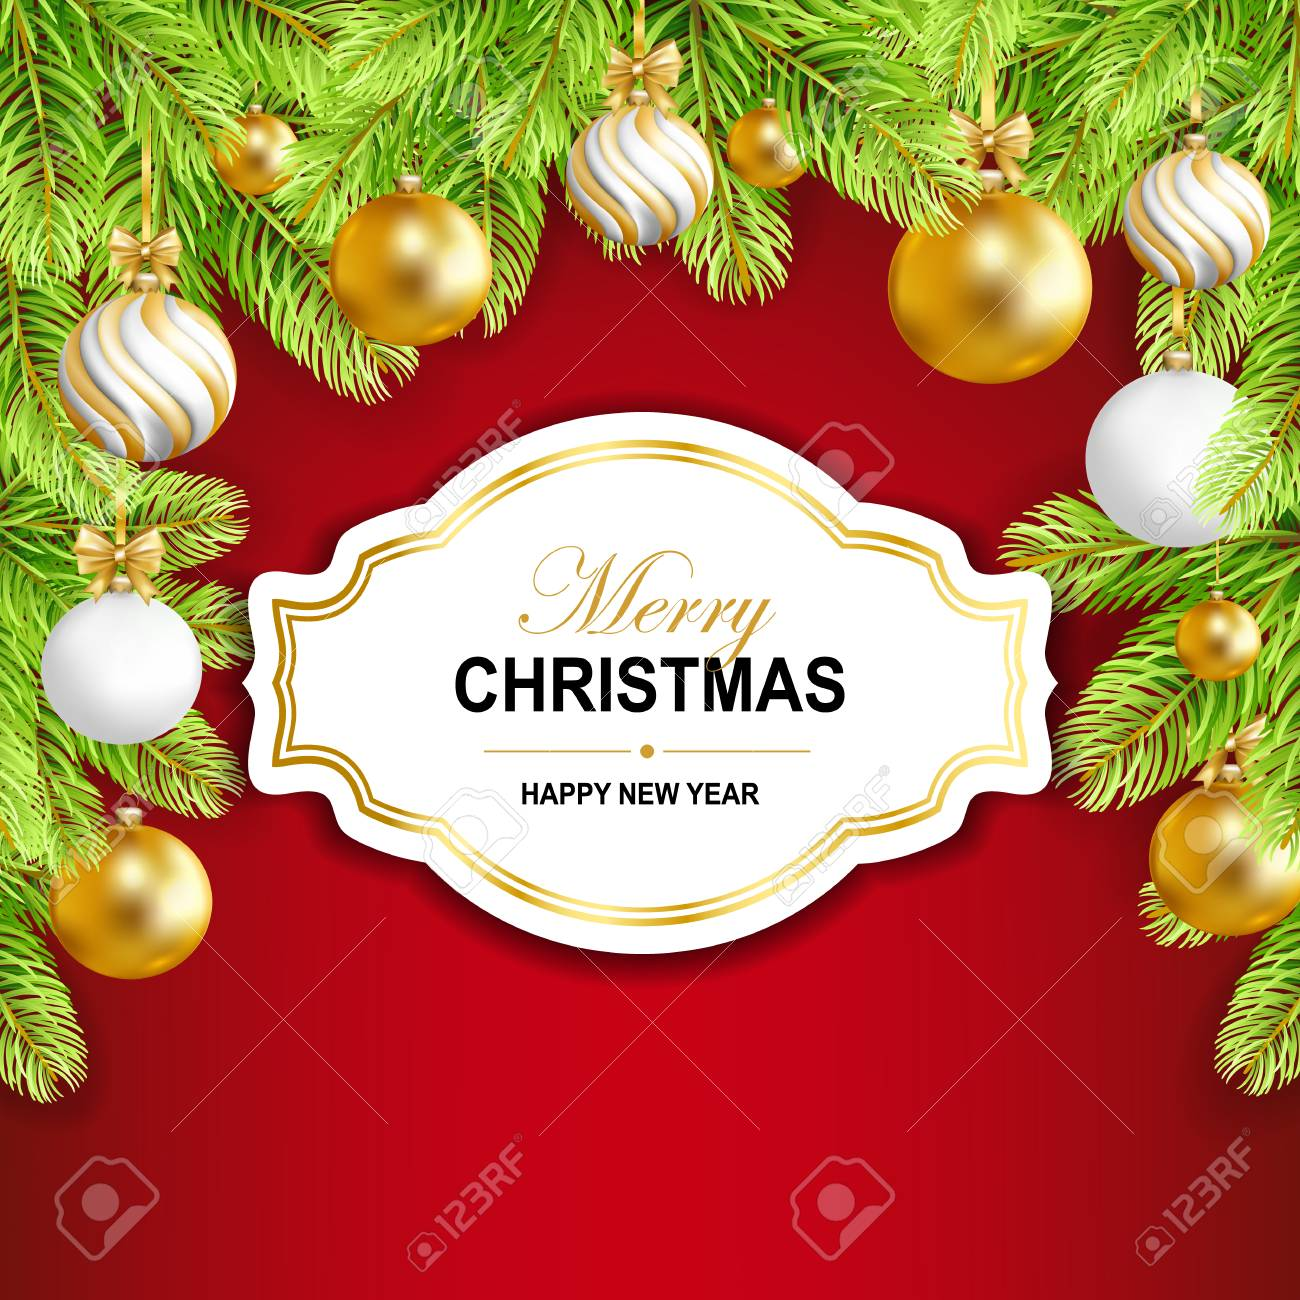 Merry Christmas And Happy New Year Card With Gold, White Balls ...